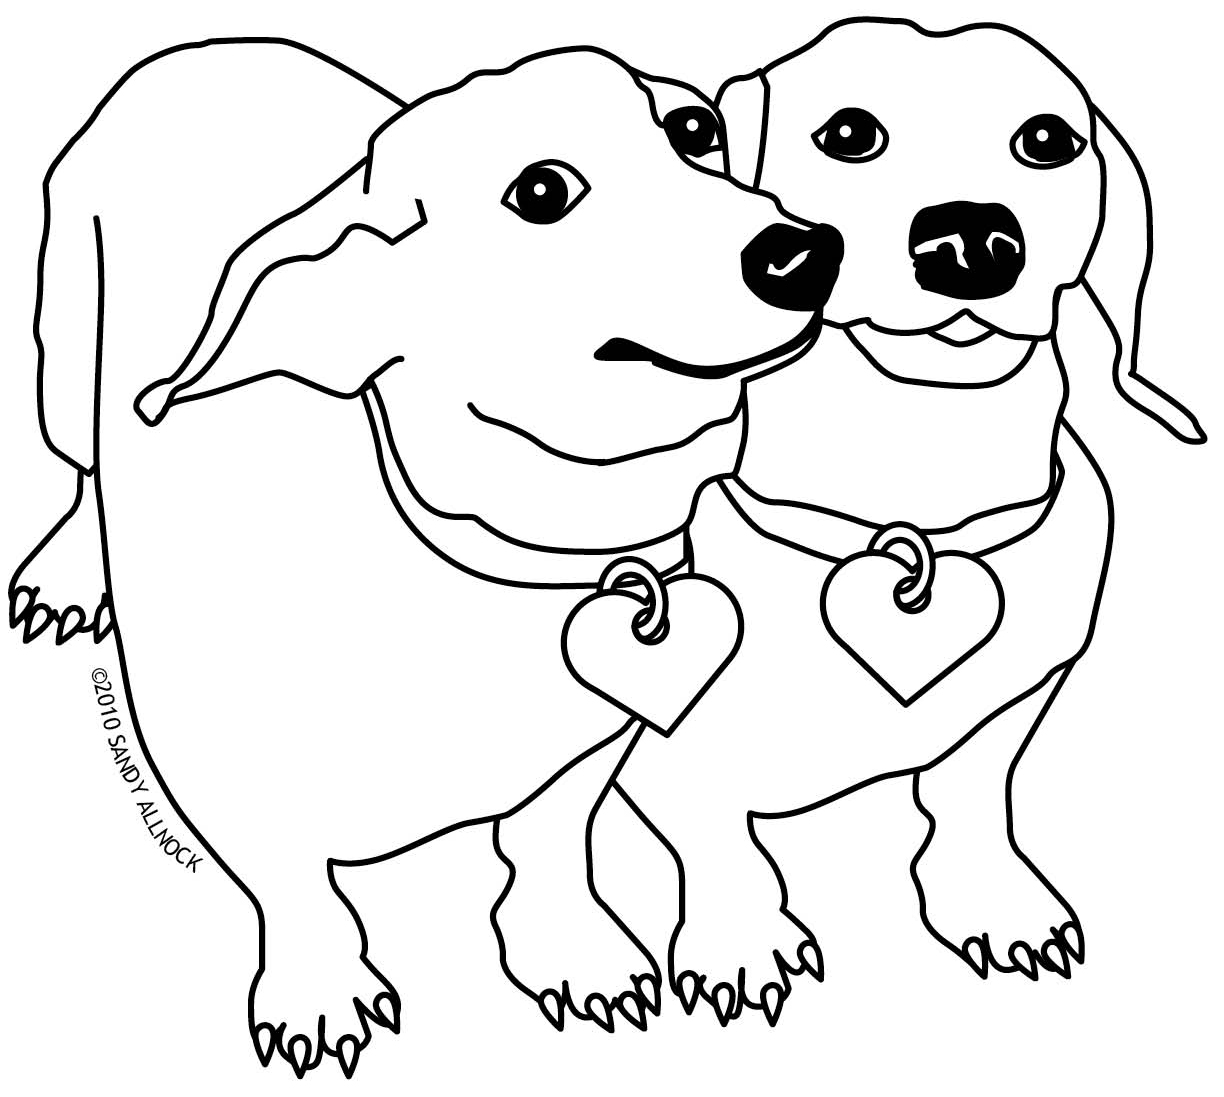 Miniature Pinscher Coloring Pages At Getcolorings